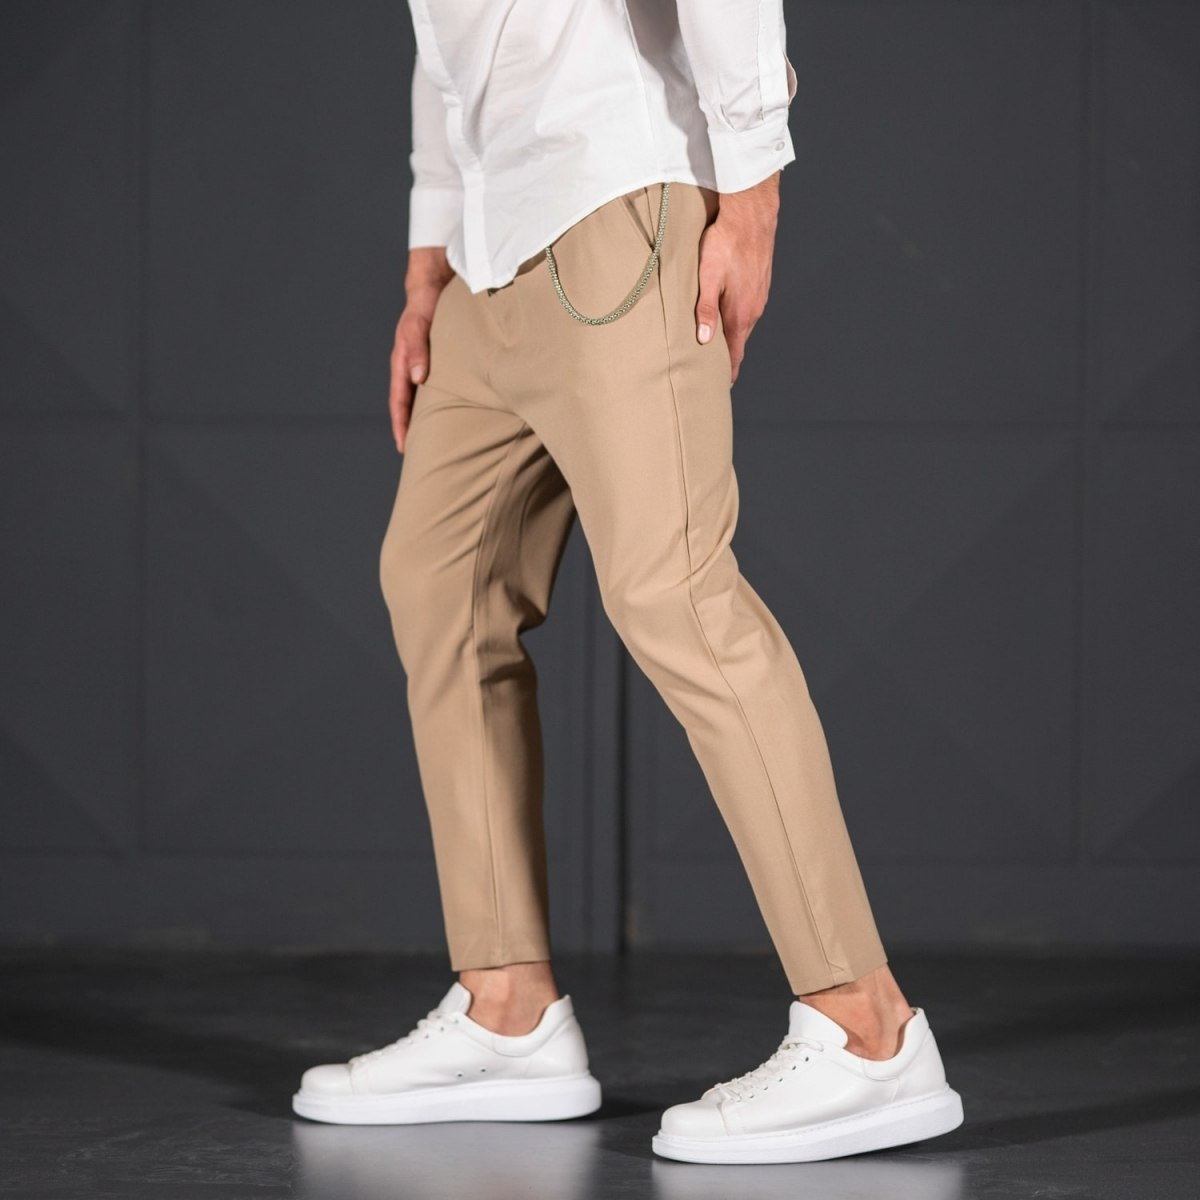 Cream Casual Slim-Fit Trousers with Chain Mv Premium Brand - 2